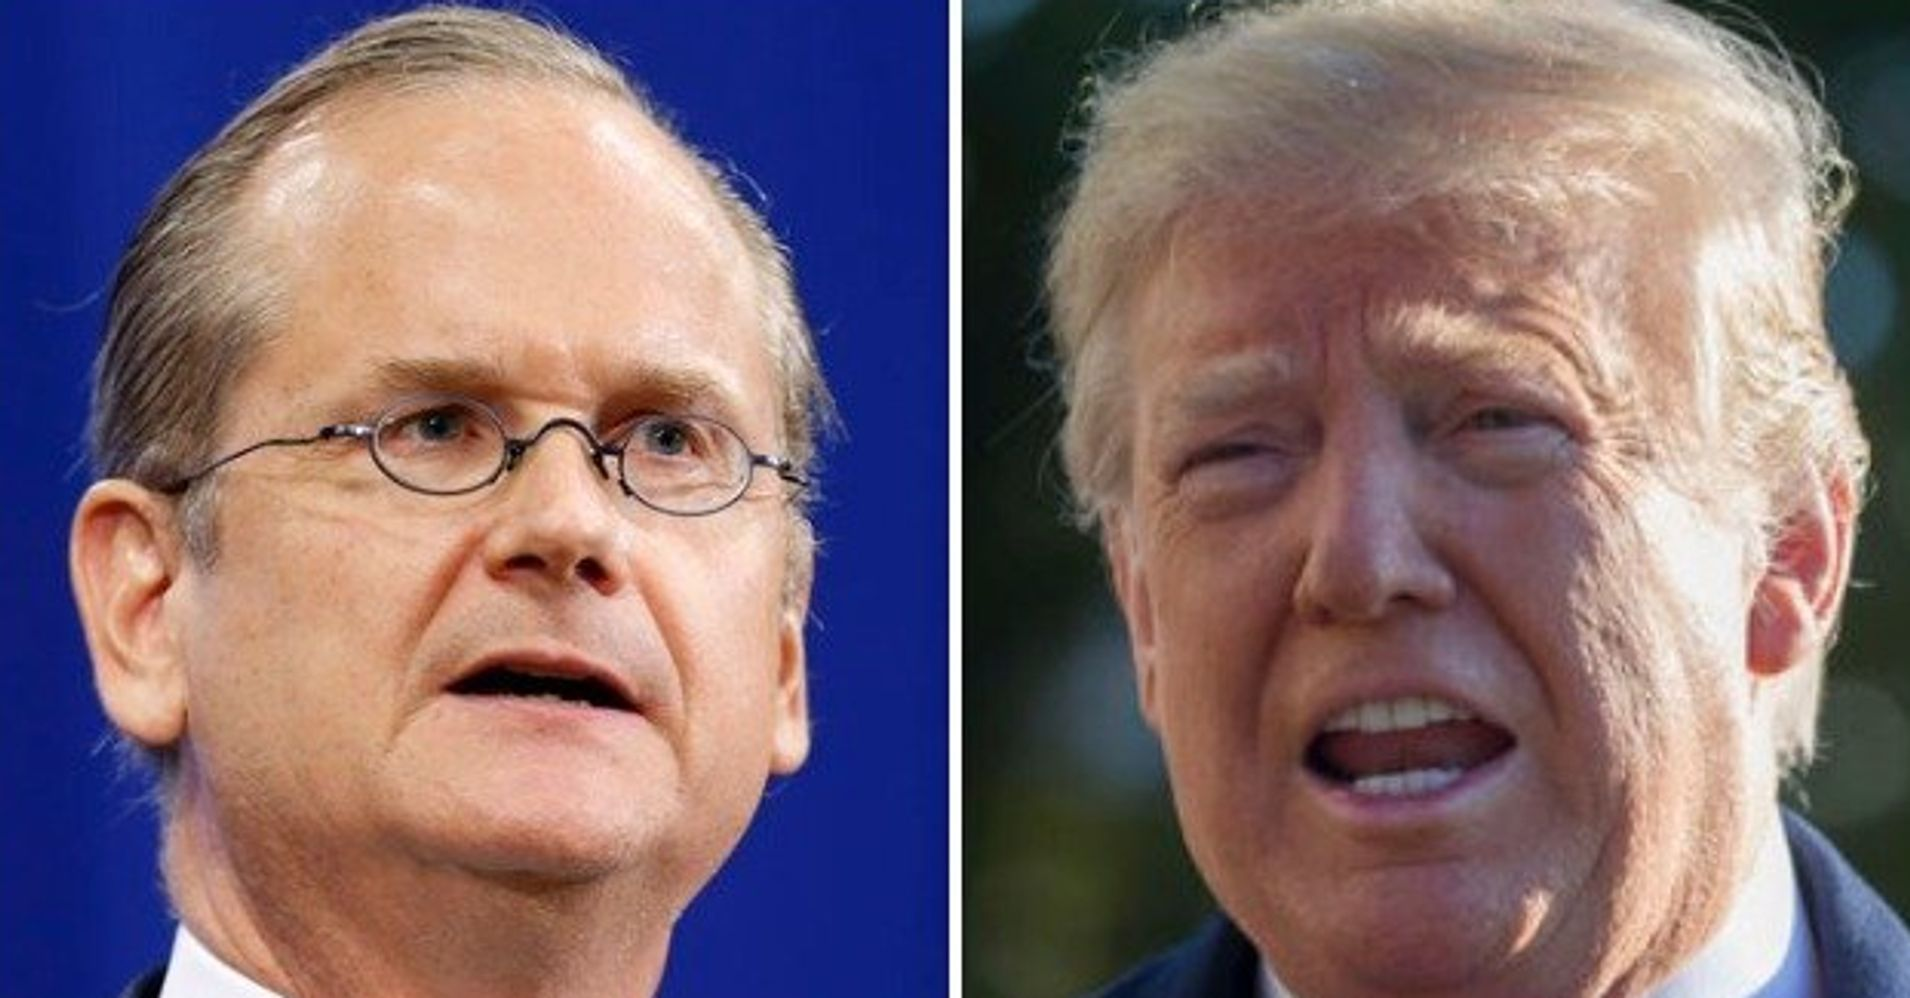 Donald Trump Is The Real National Emergency, Harvard Law Professor Lawrence Lessig Says